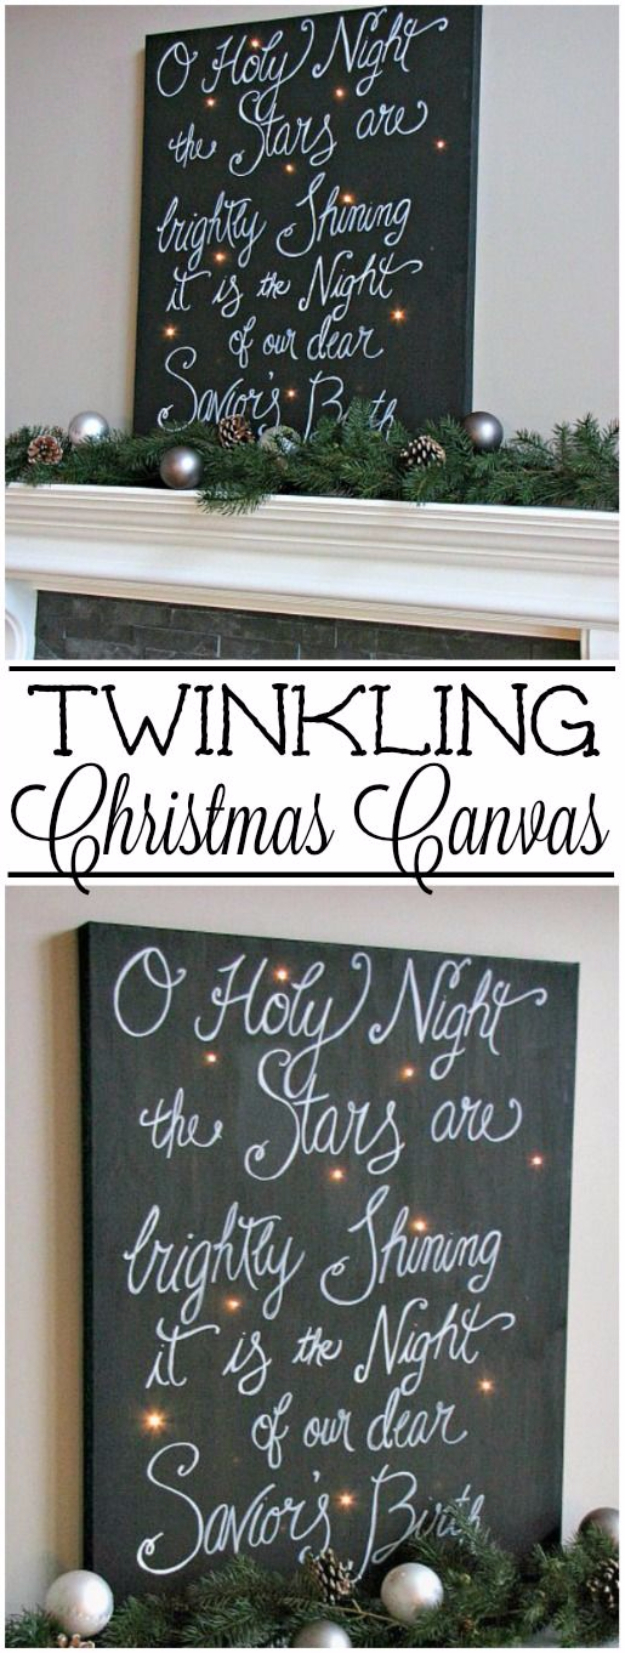 Cool Ways To Use Christmas Lights - Twinkling Christmas Canvas Art - Best Easy DIY Ideas for String Lights for Room Decoration, Home Decor and Creative DIY Bedroom Lighting - Creative Christmas Light Tutorials with Step by Step Instructions - Creative Crafts and DIY Projects for Teens and Adults http://diyjoy.com/cool-ways-to-use-christmas-lights